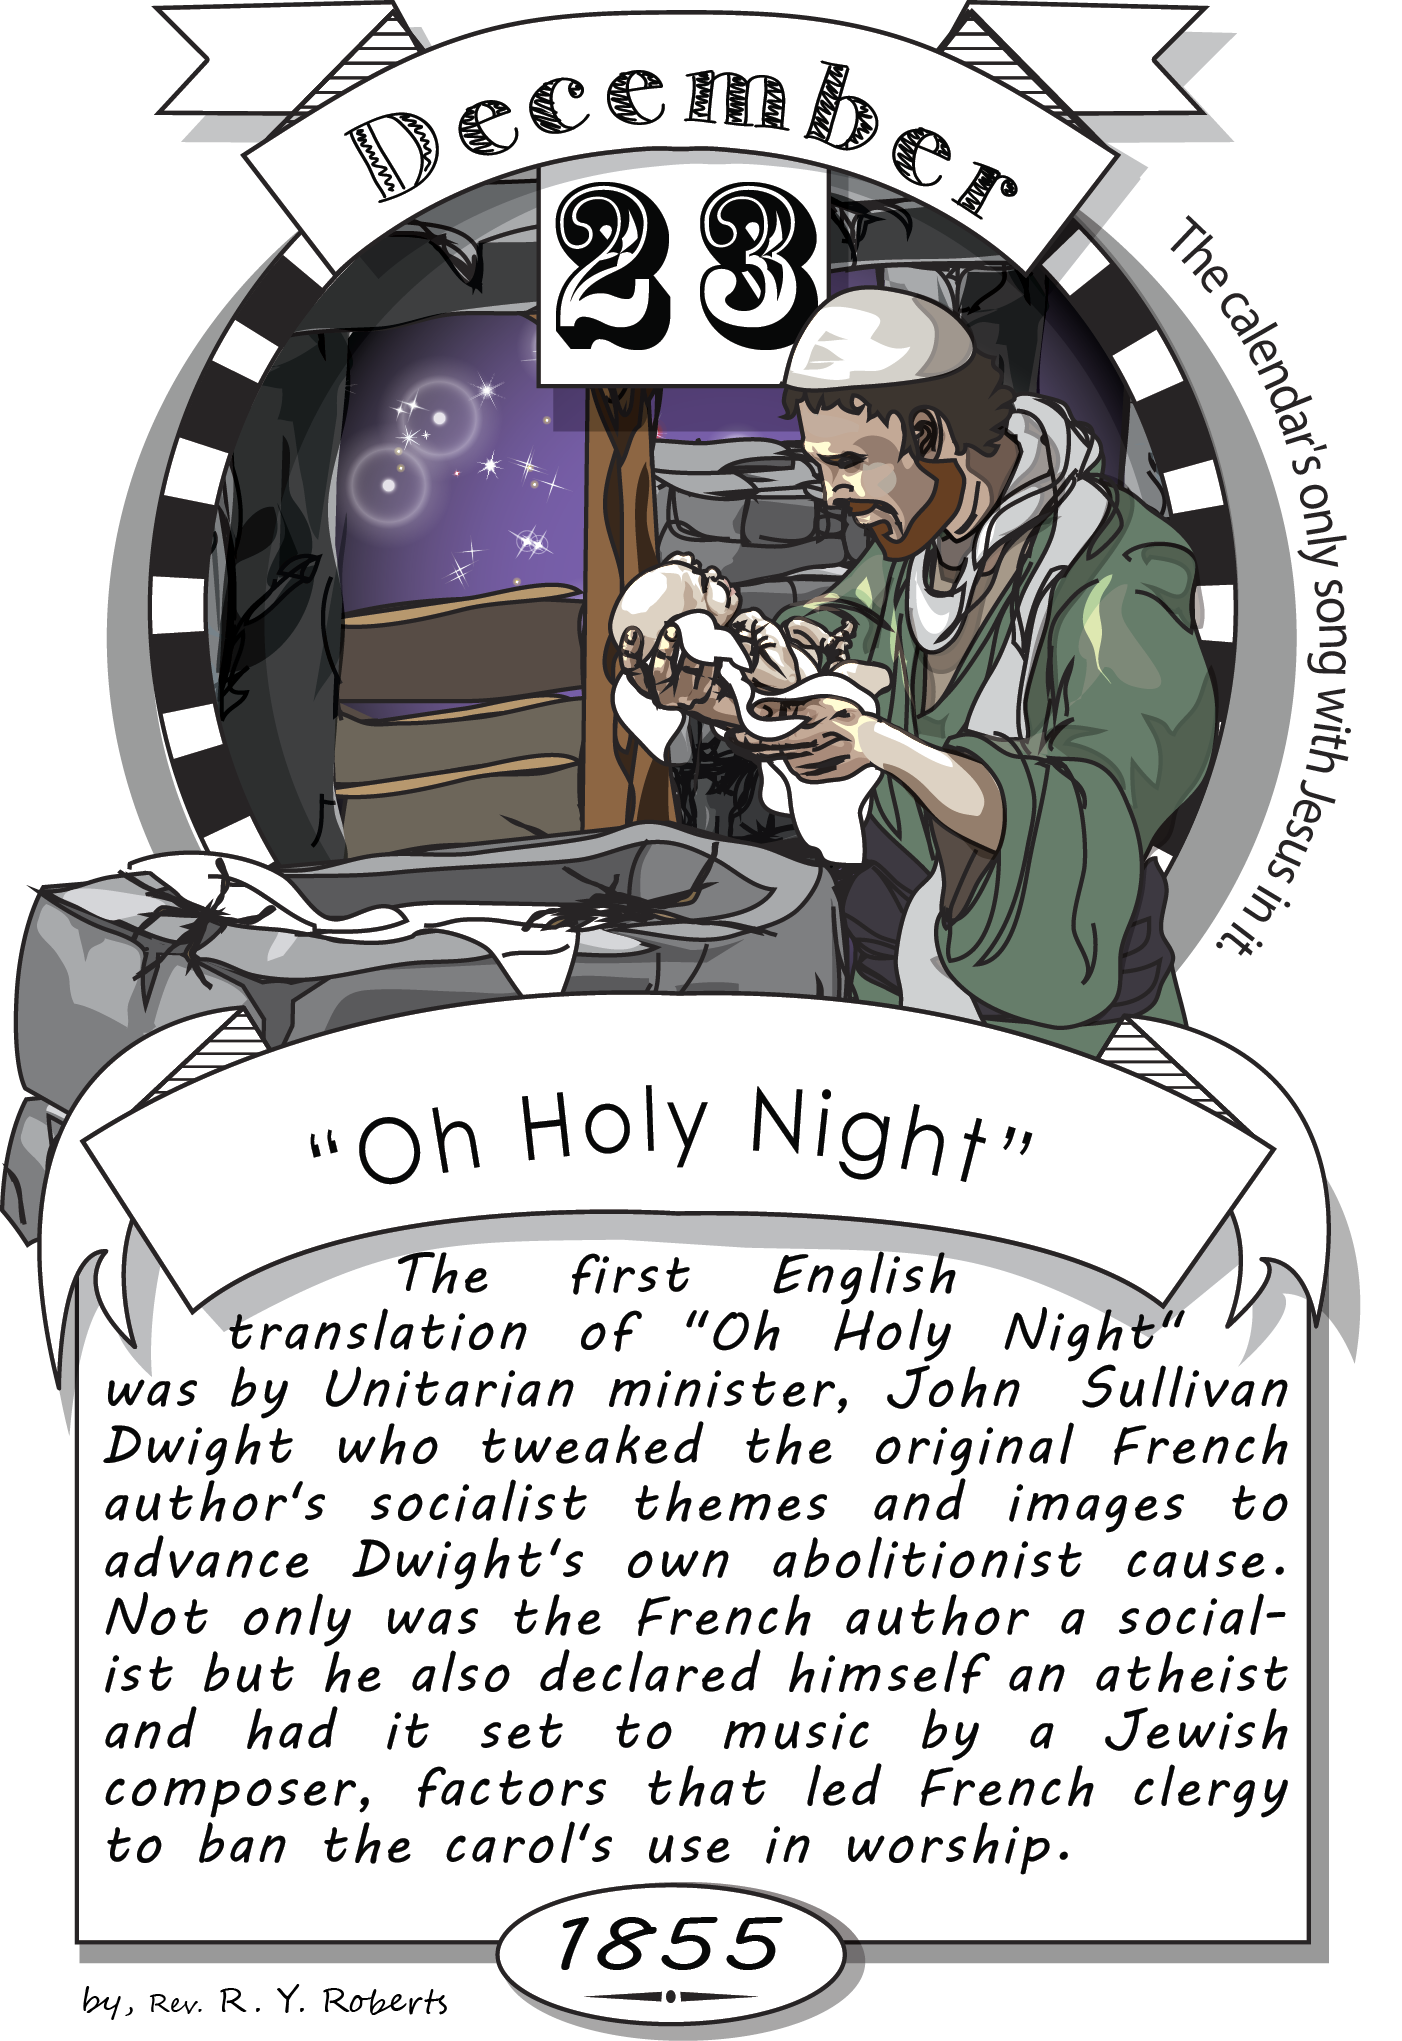 December uua org . Leader clipart abolitionist